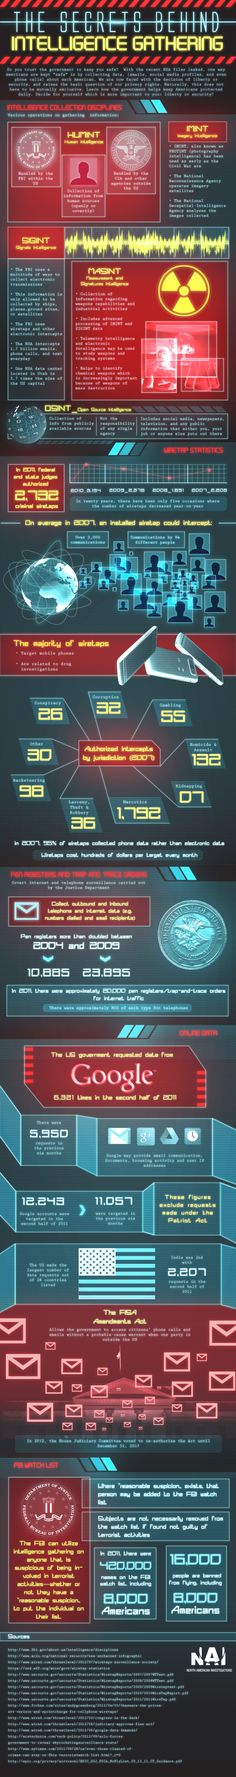 The secrets behind intelligence gathering [infographic]